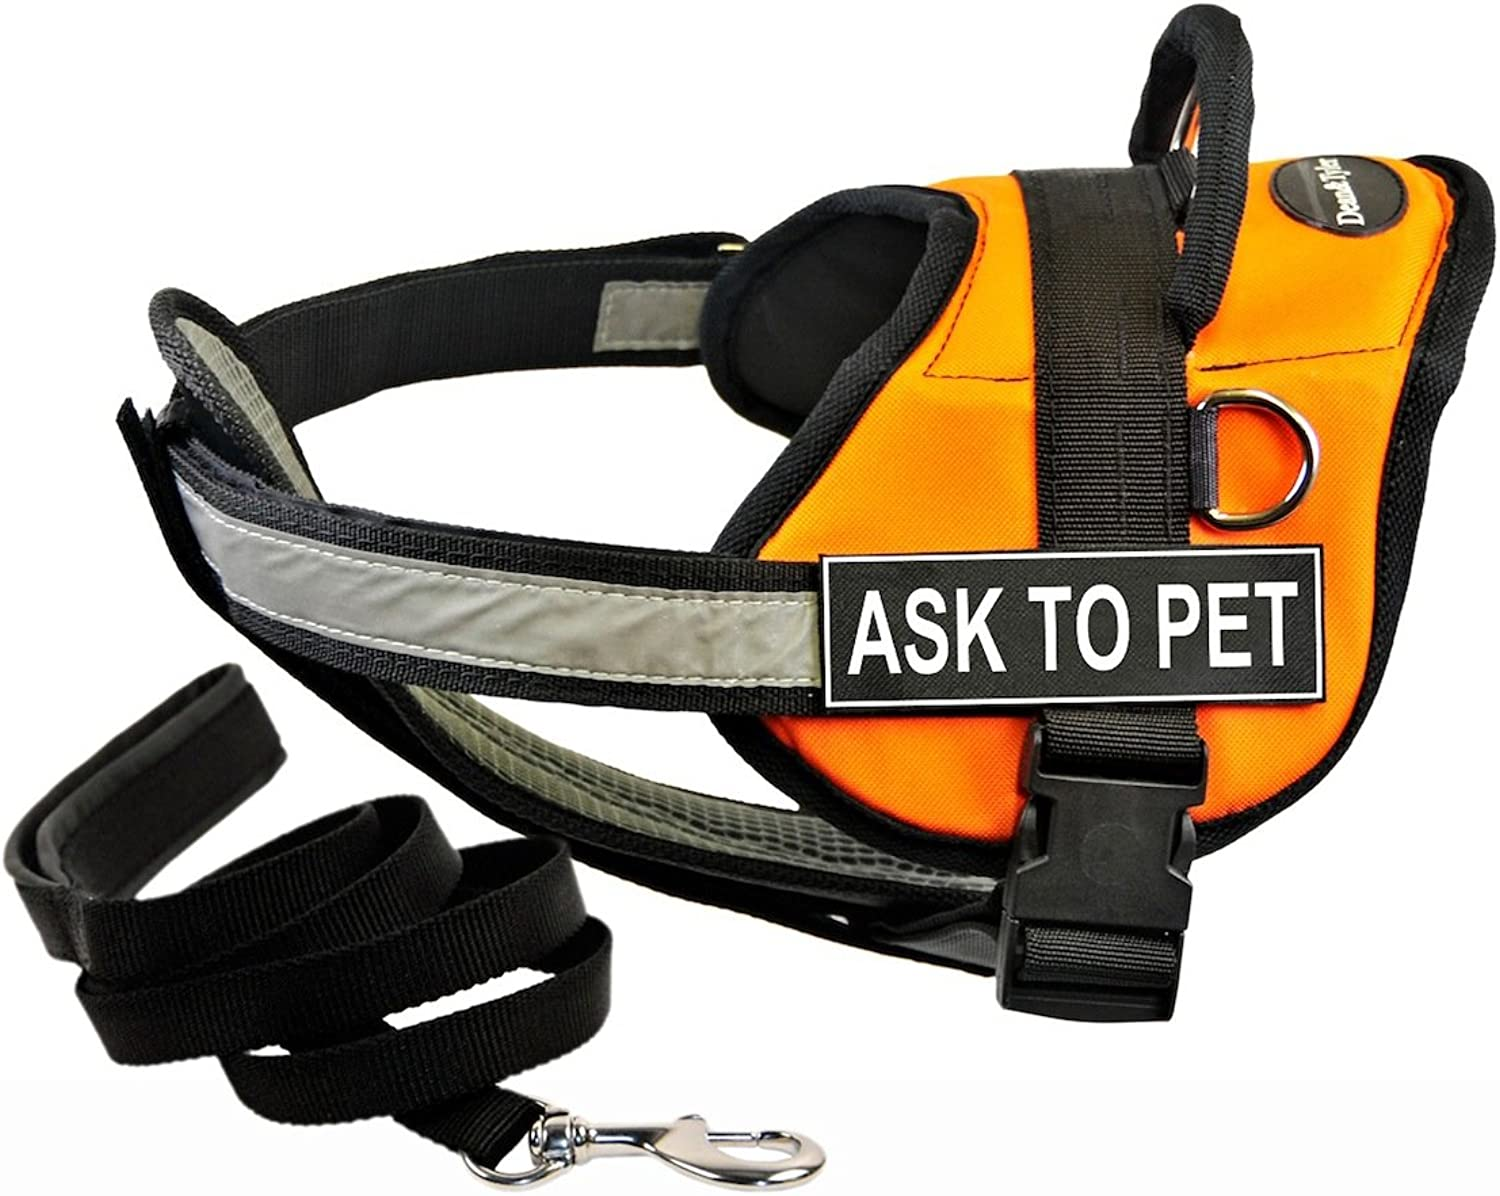 Dean & Tyler DT Works orange ASK TO PET Harness with Chest Padding, XSmall, and Black 6 ft Padded Puppy Leash.